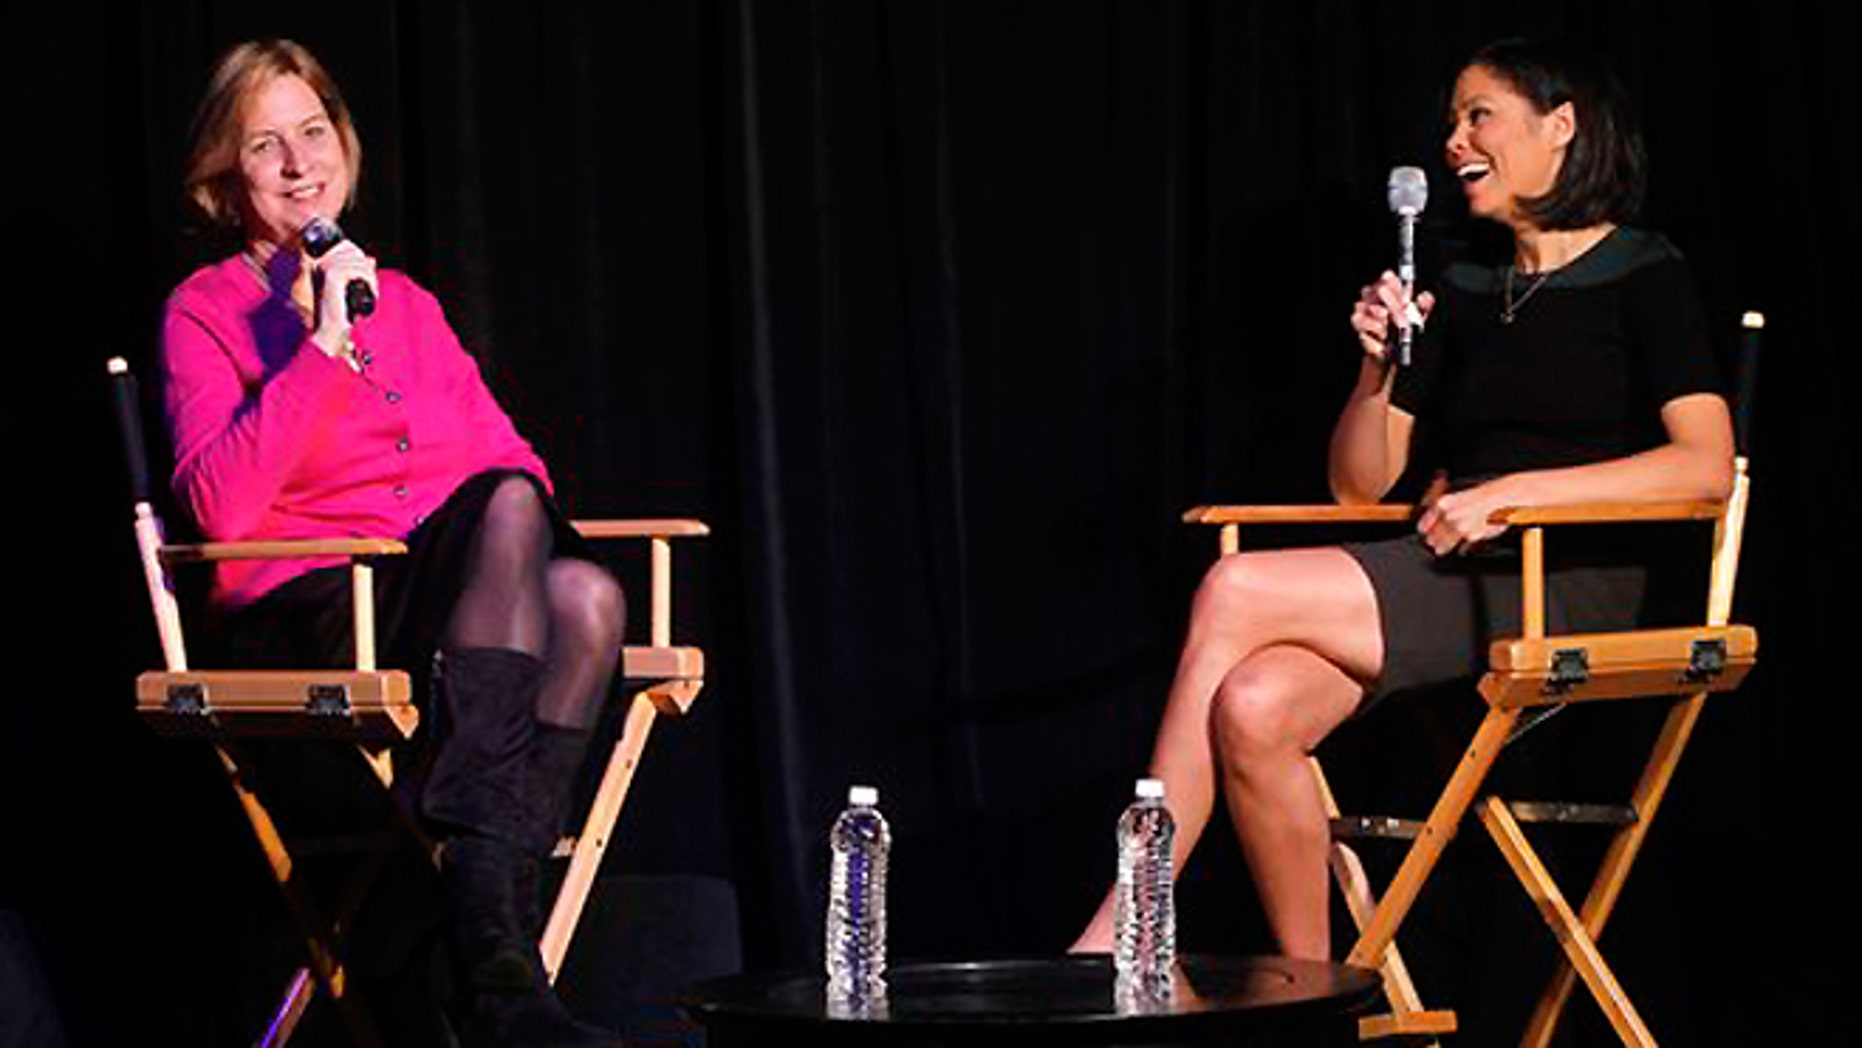 Oct. 2: NBC News Chief Digital Officer Vivian Schiller, left, speaks with MSNBC political analyst and news anchor Alex Wagner during a panel at Advertising Week in New York.